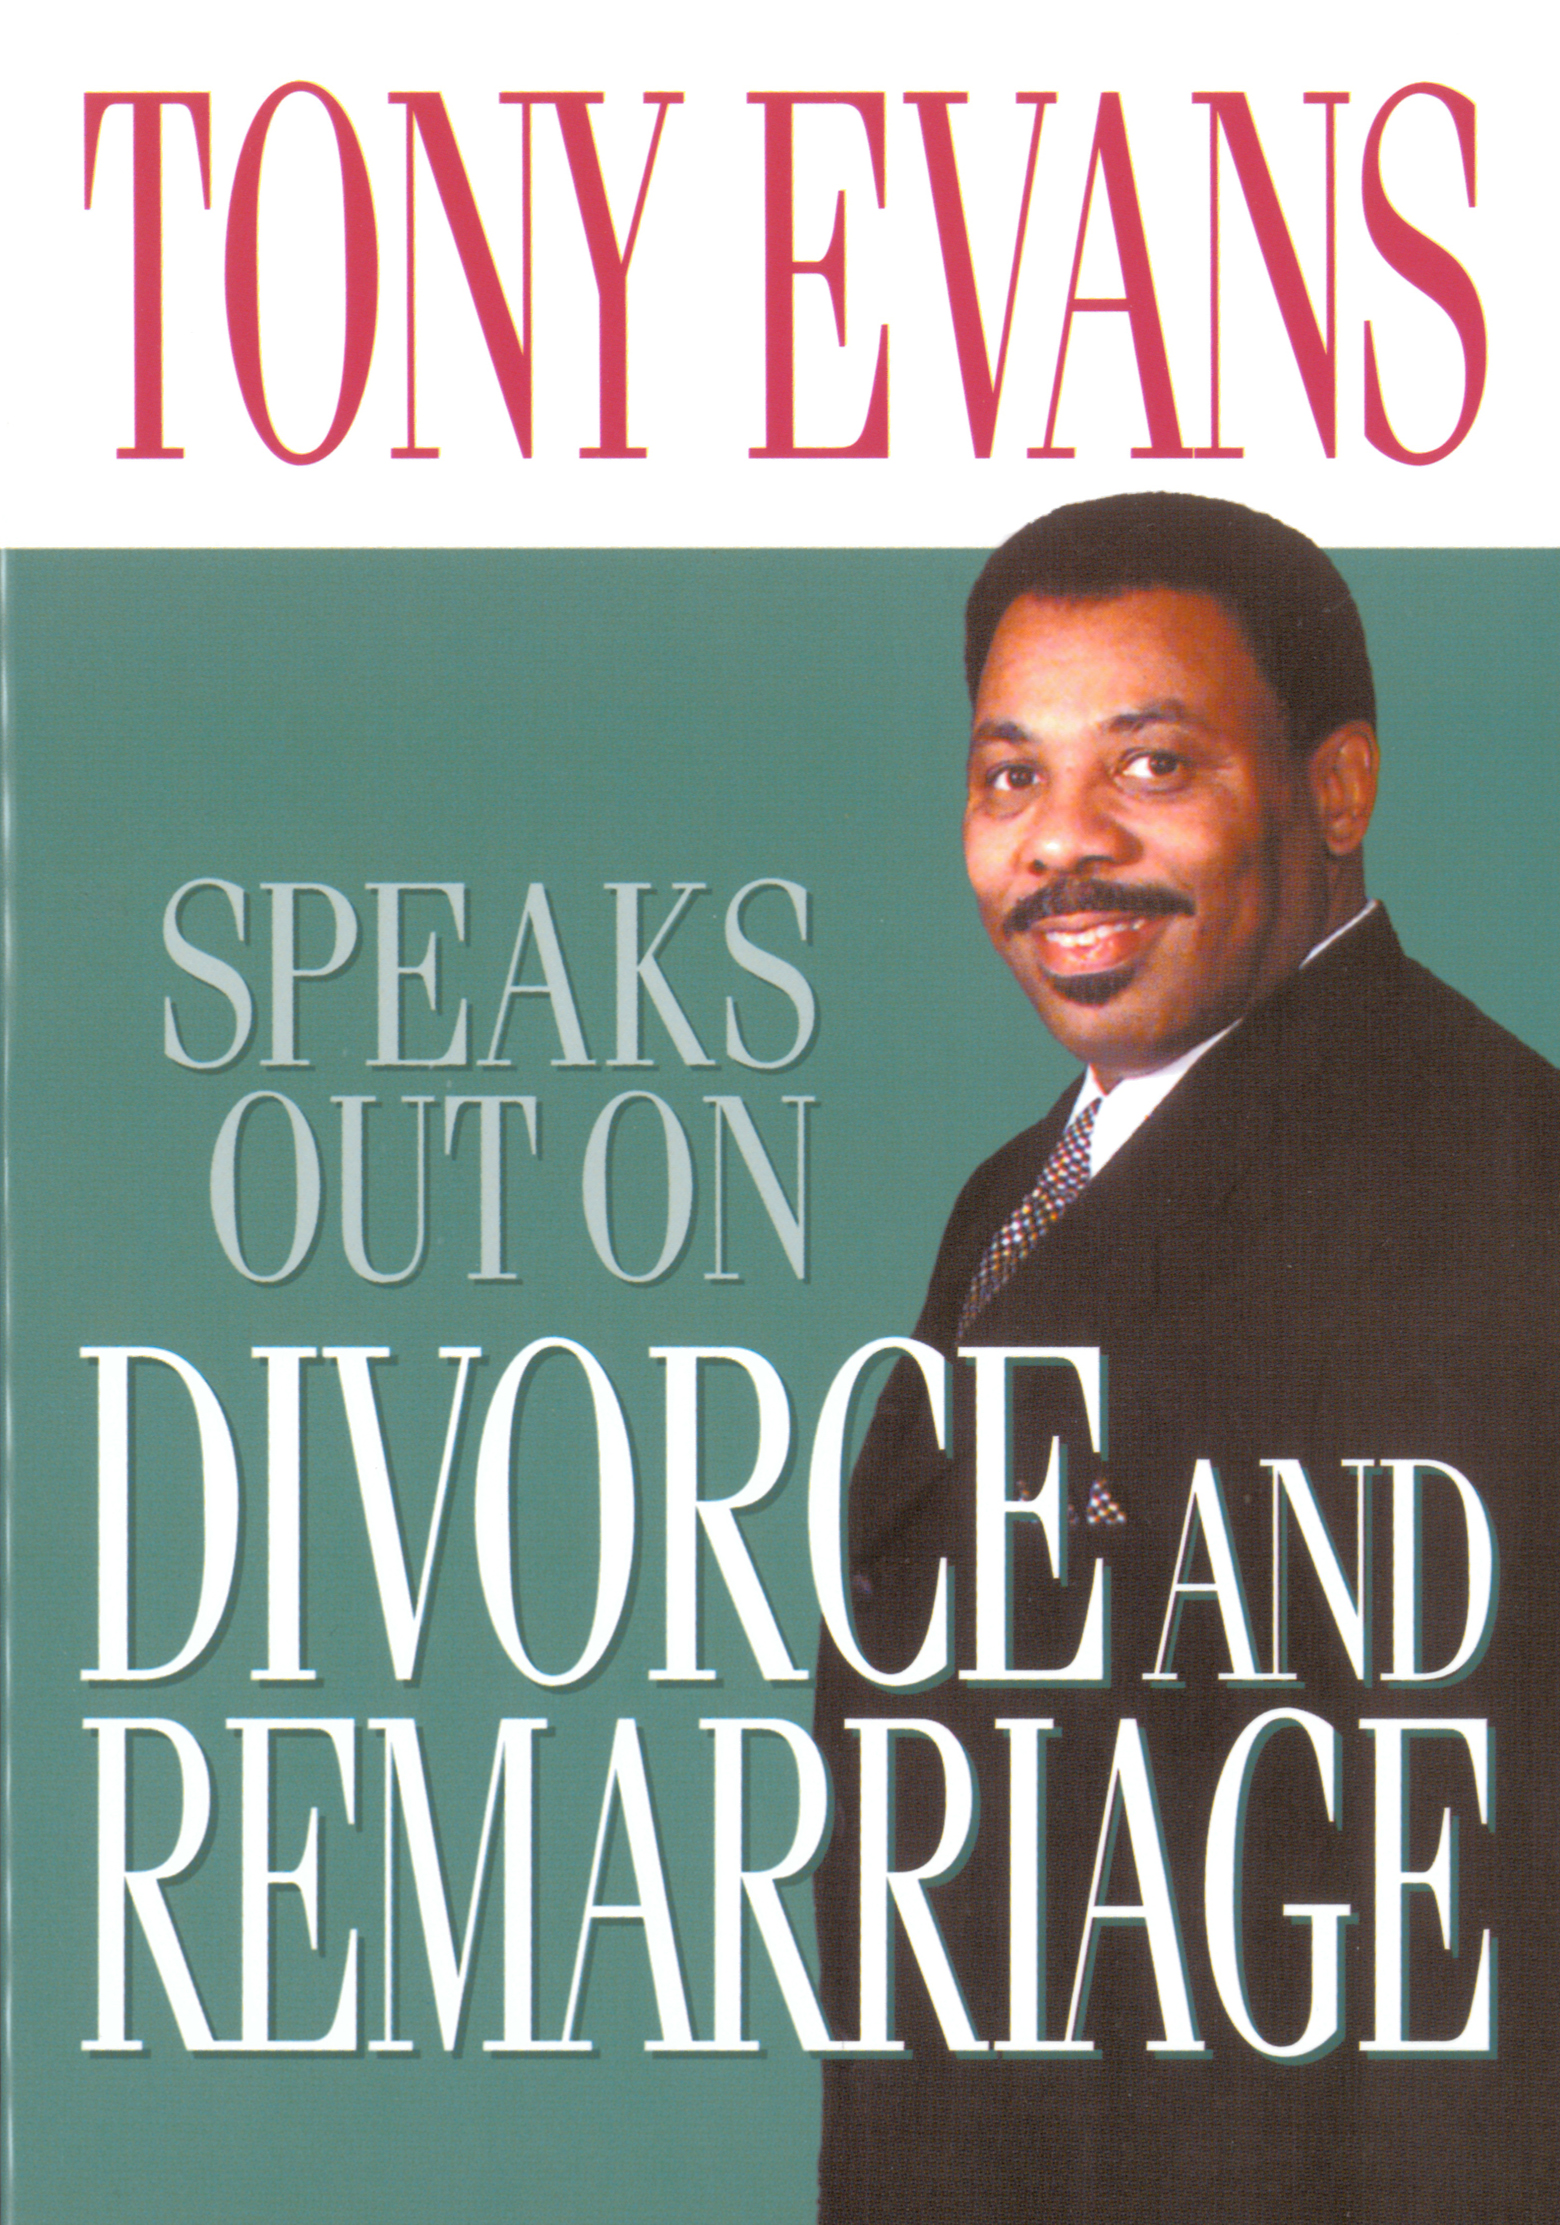 Tony Evans Speaks Out on Divorce and Remarriage